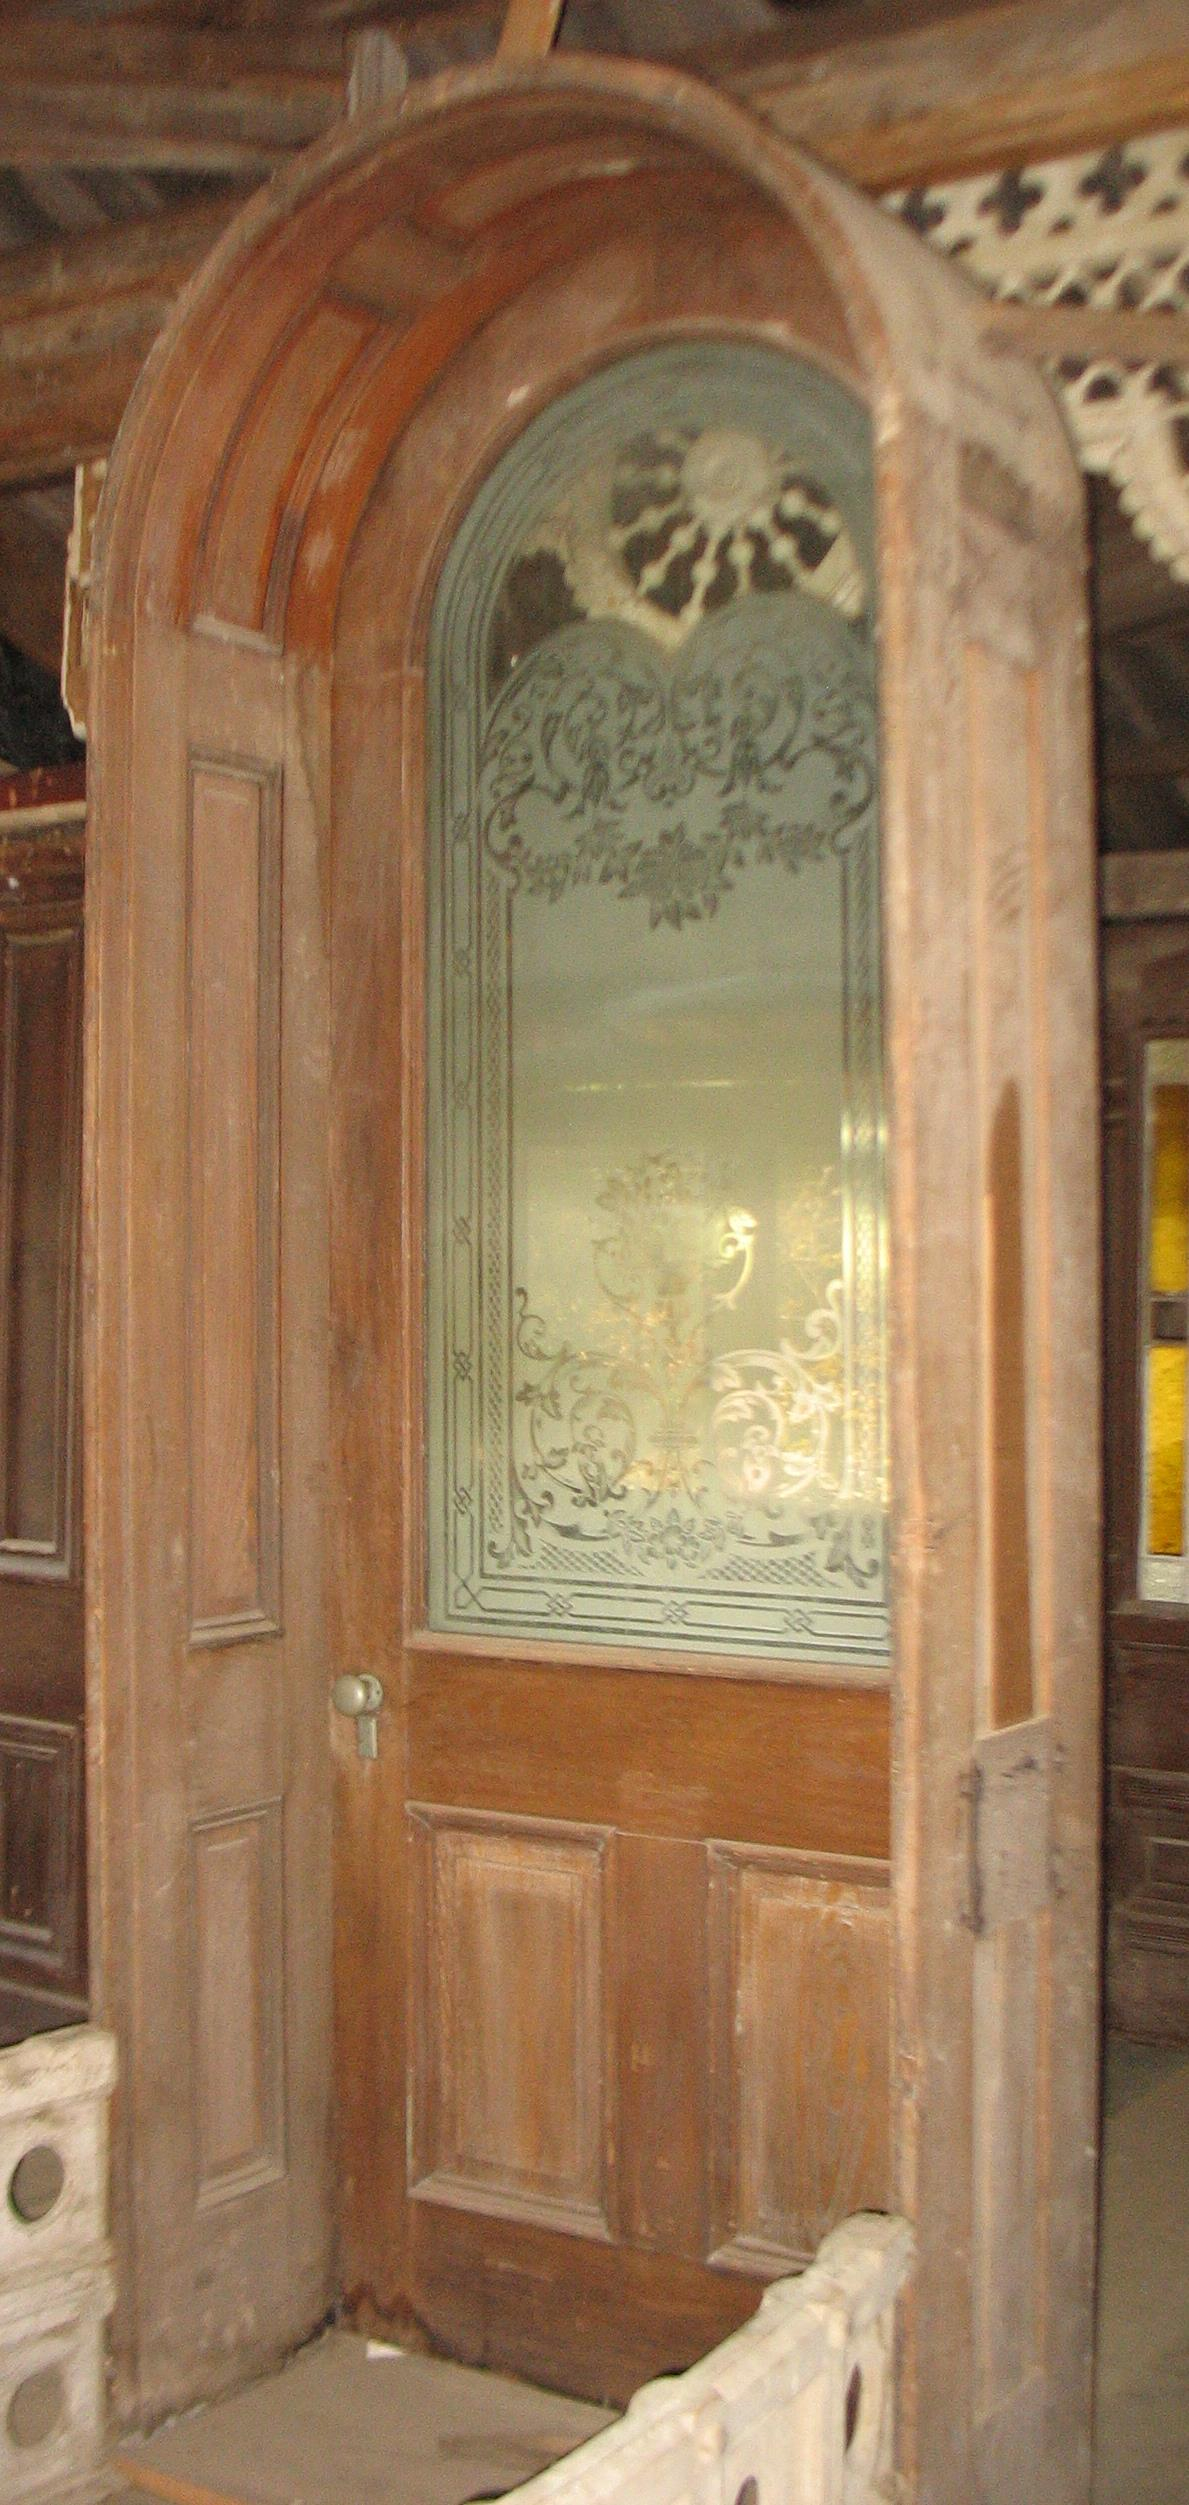 This door was the main Entrance Door to Bashford Manor Plantation in Louisville, Kentucky.       Three Kentucky Derby winners came from the stables here including Azra in 1892. Manuel in 1899 and Sir Huon in 1902. The Bashford Manor Stakes is still run today at the Derby.    Price upon request